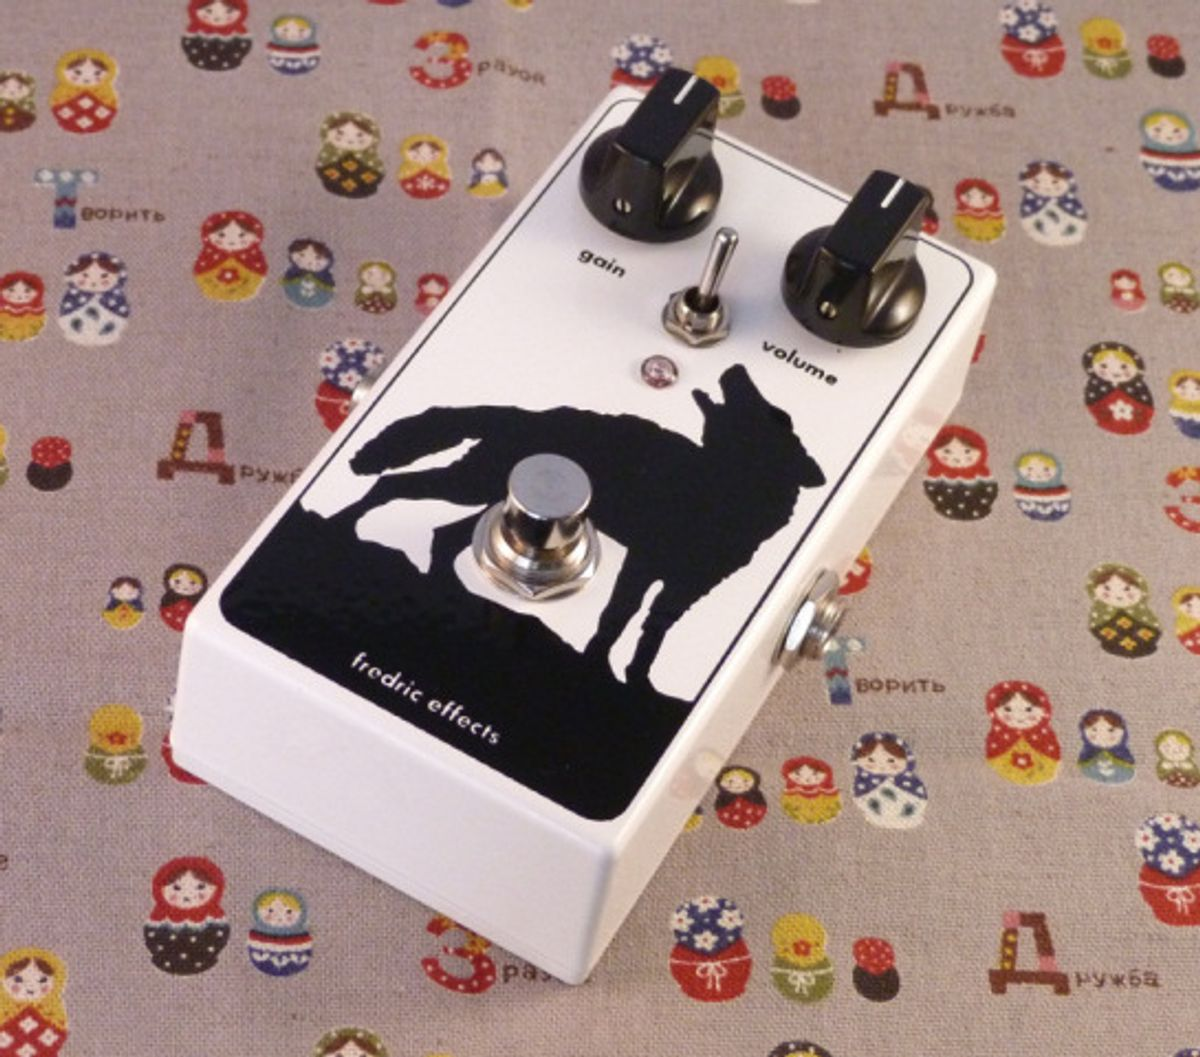 Fredric Effects Announces the Grumbly Wolf